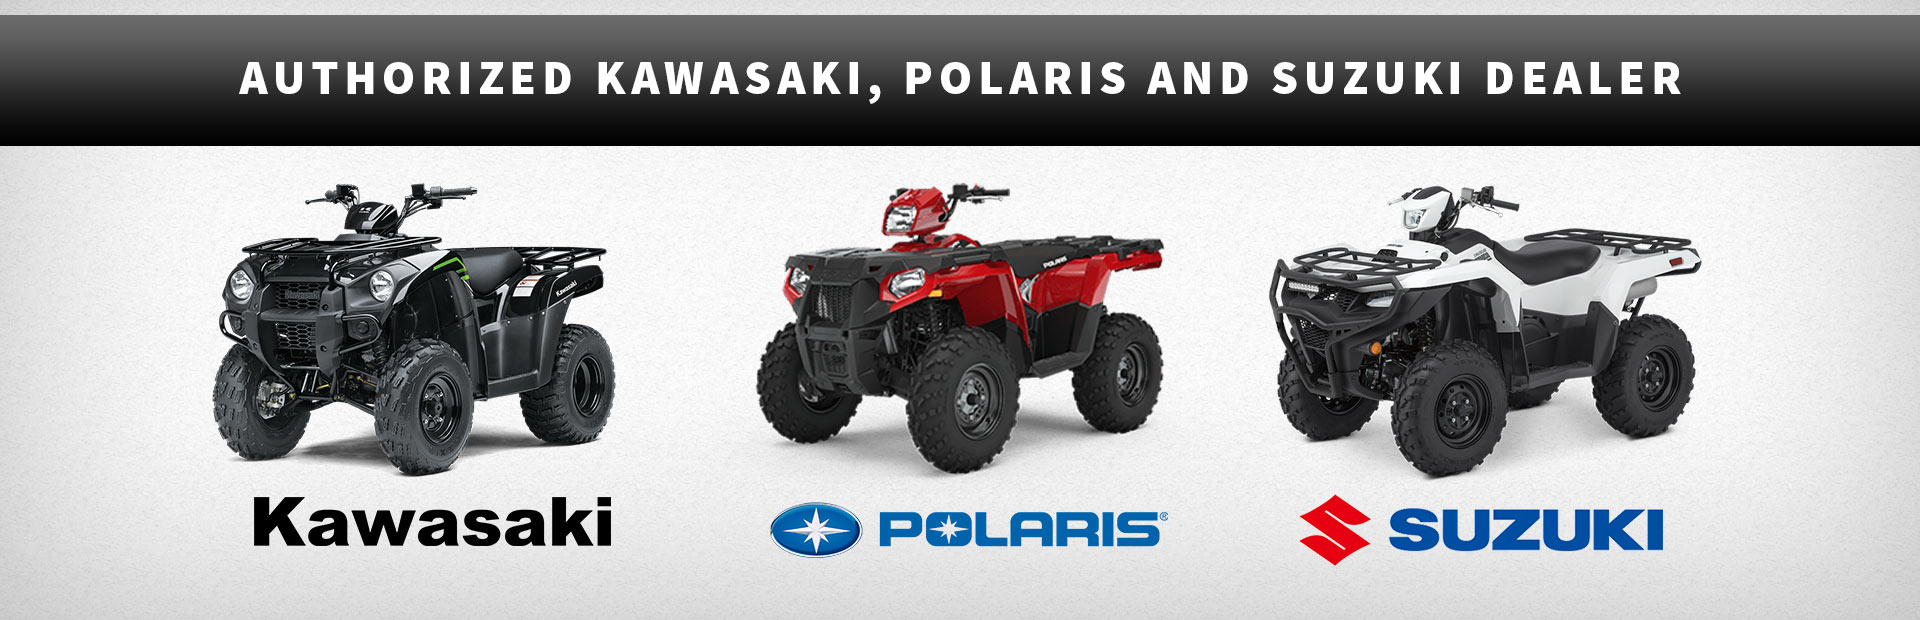 Authorized Kawasaki, Polaris and Suzuki Dealer. Click here to see our new models!